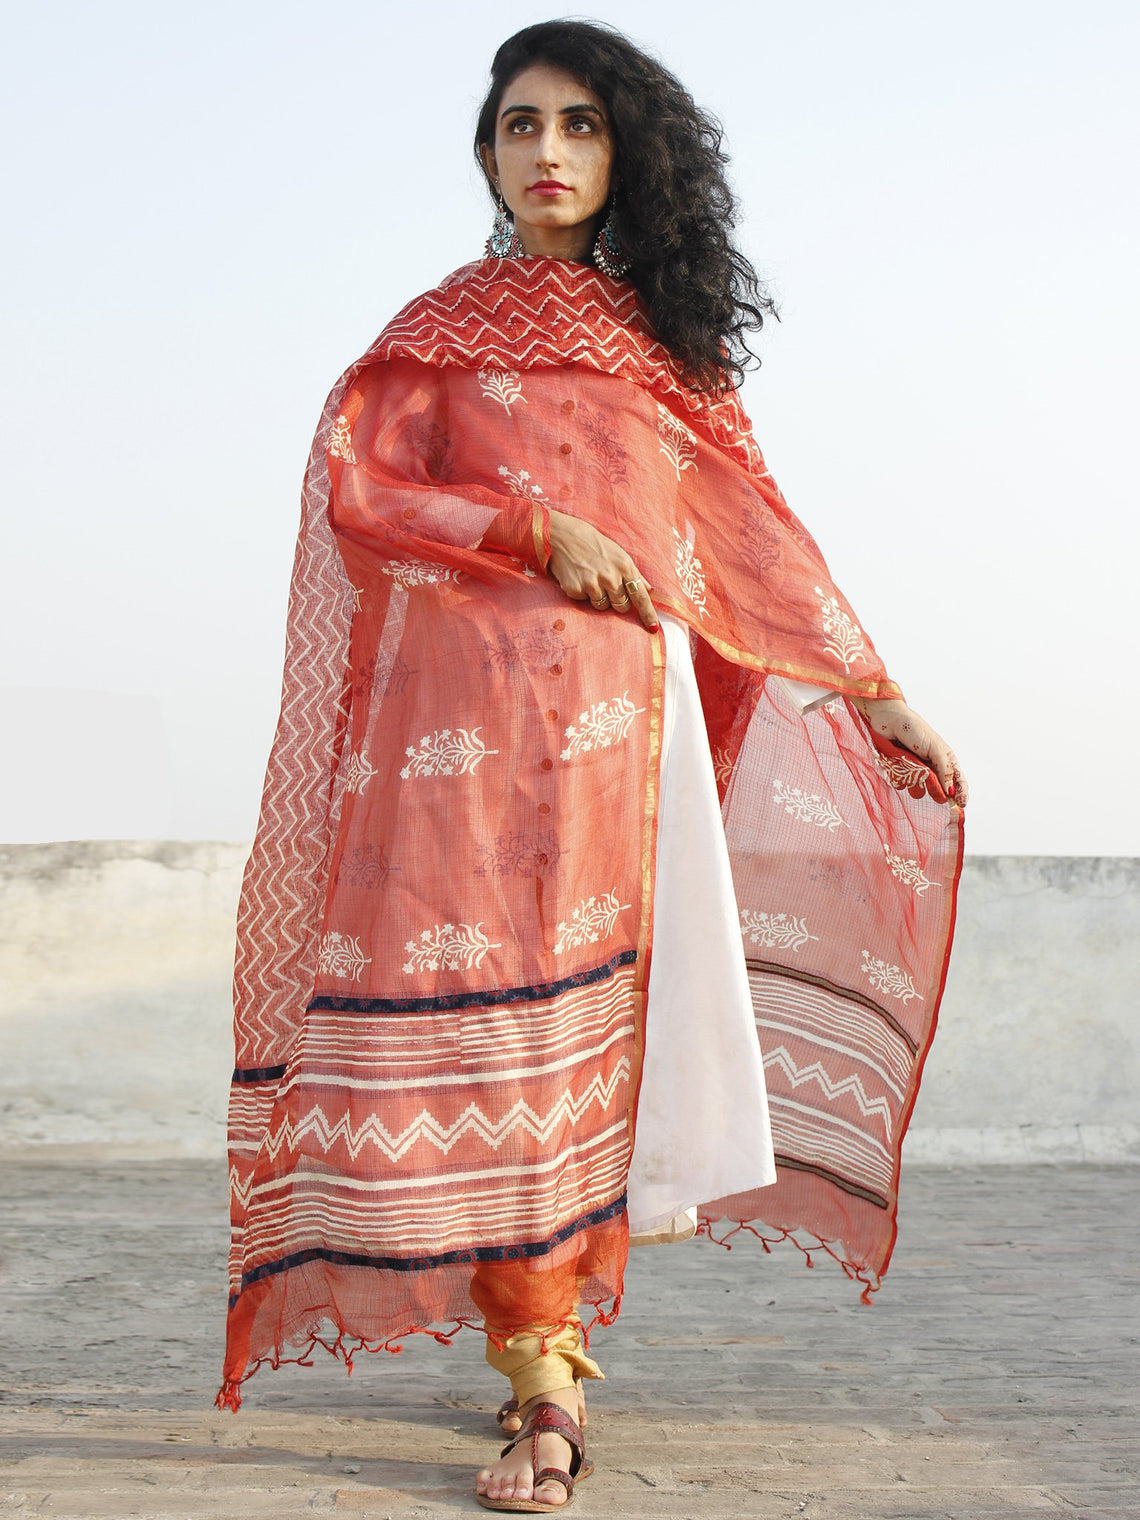 Rust Red Ivory Kota Silk Hand Black Printed Dupatta With Ajrakh Printed Stitched Highlighting  - D04170130